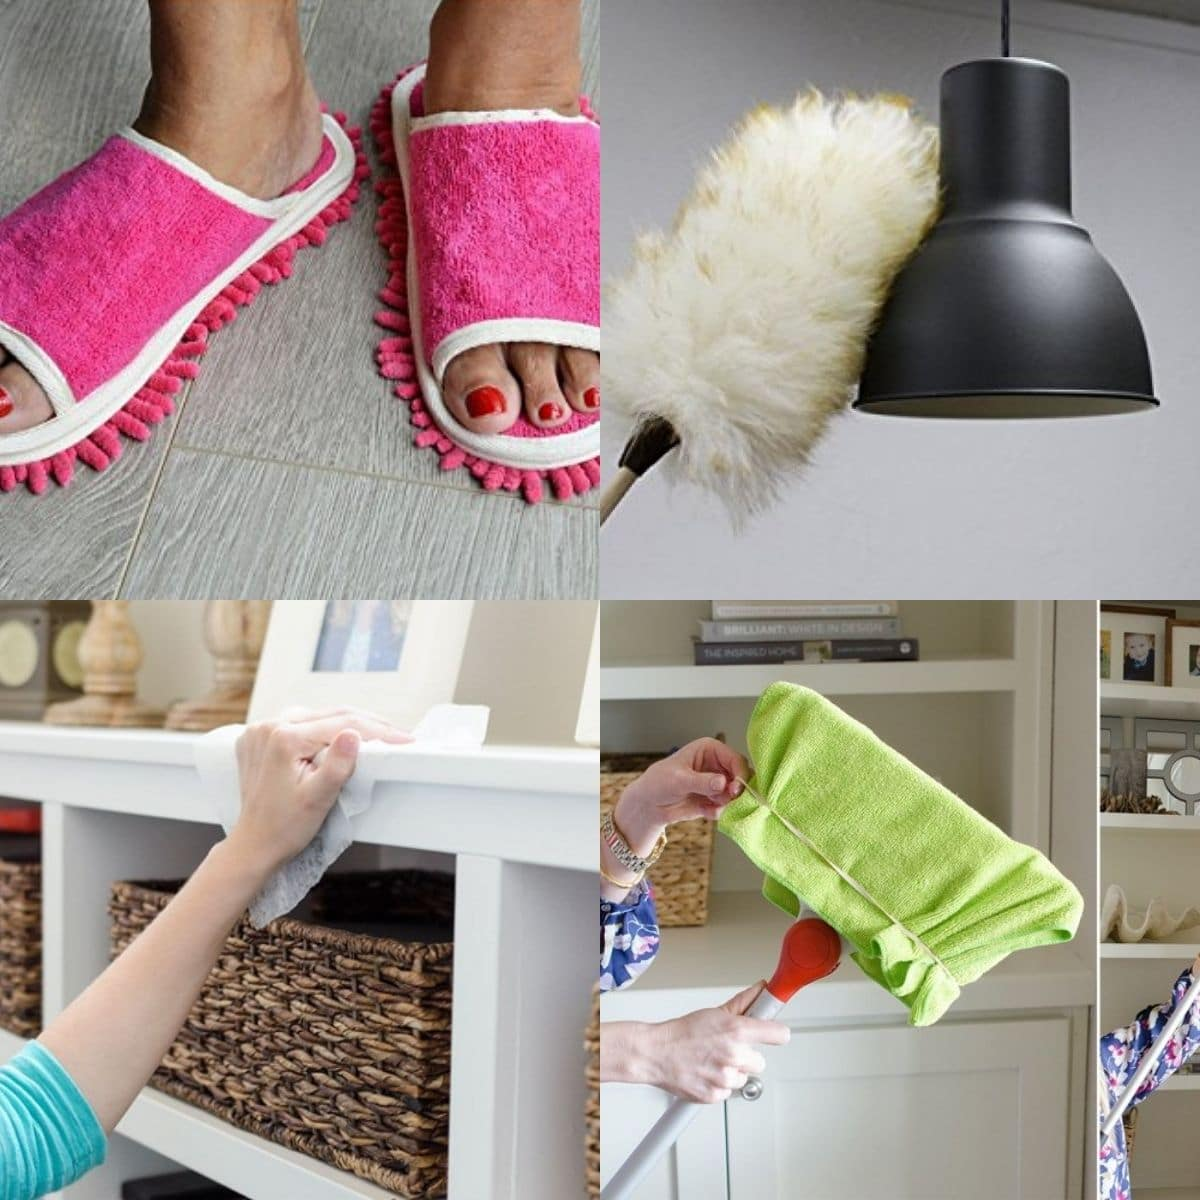 8 Easy Dusting Hacks That Will Keep Your Home Clean   Craftsy Hacks